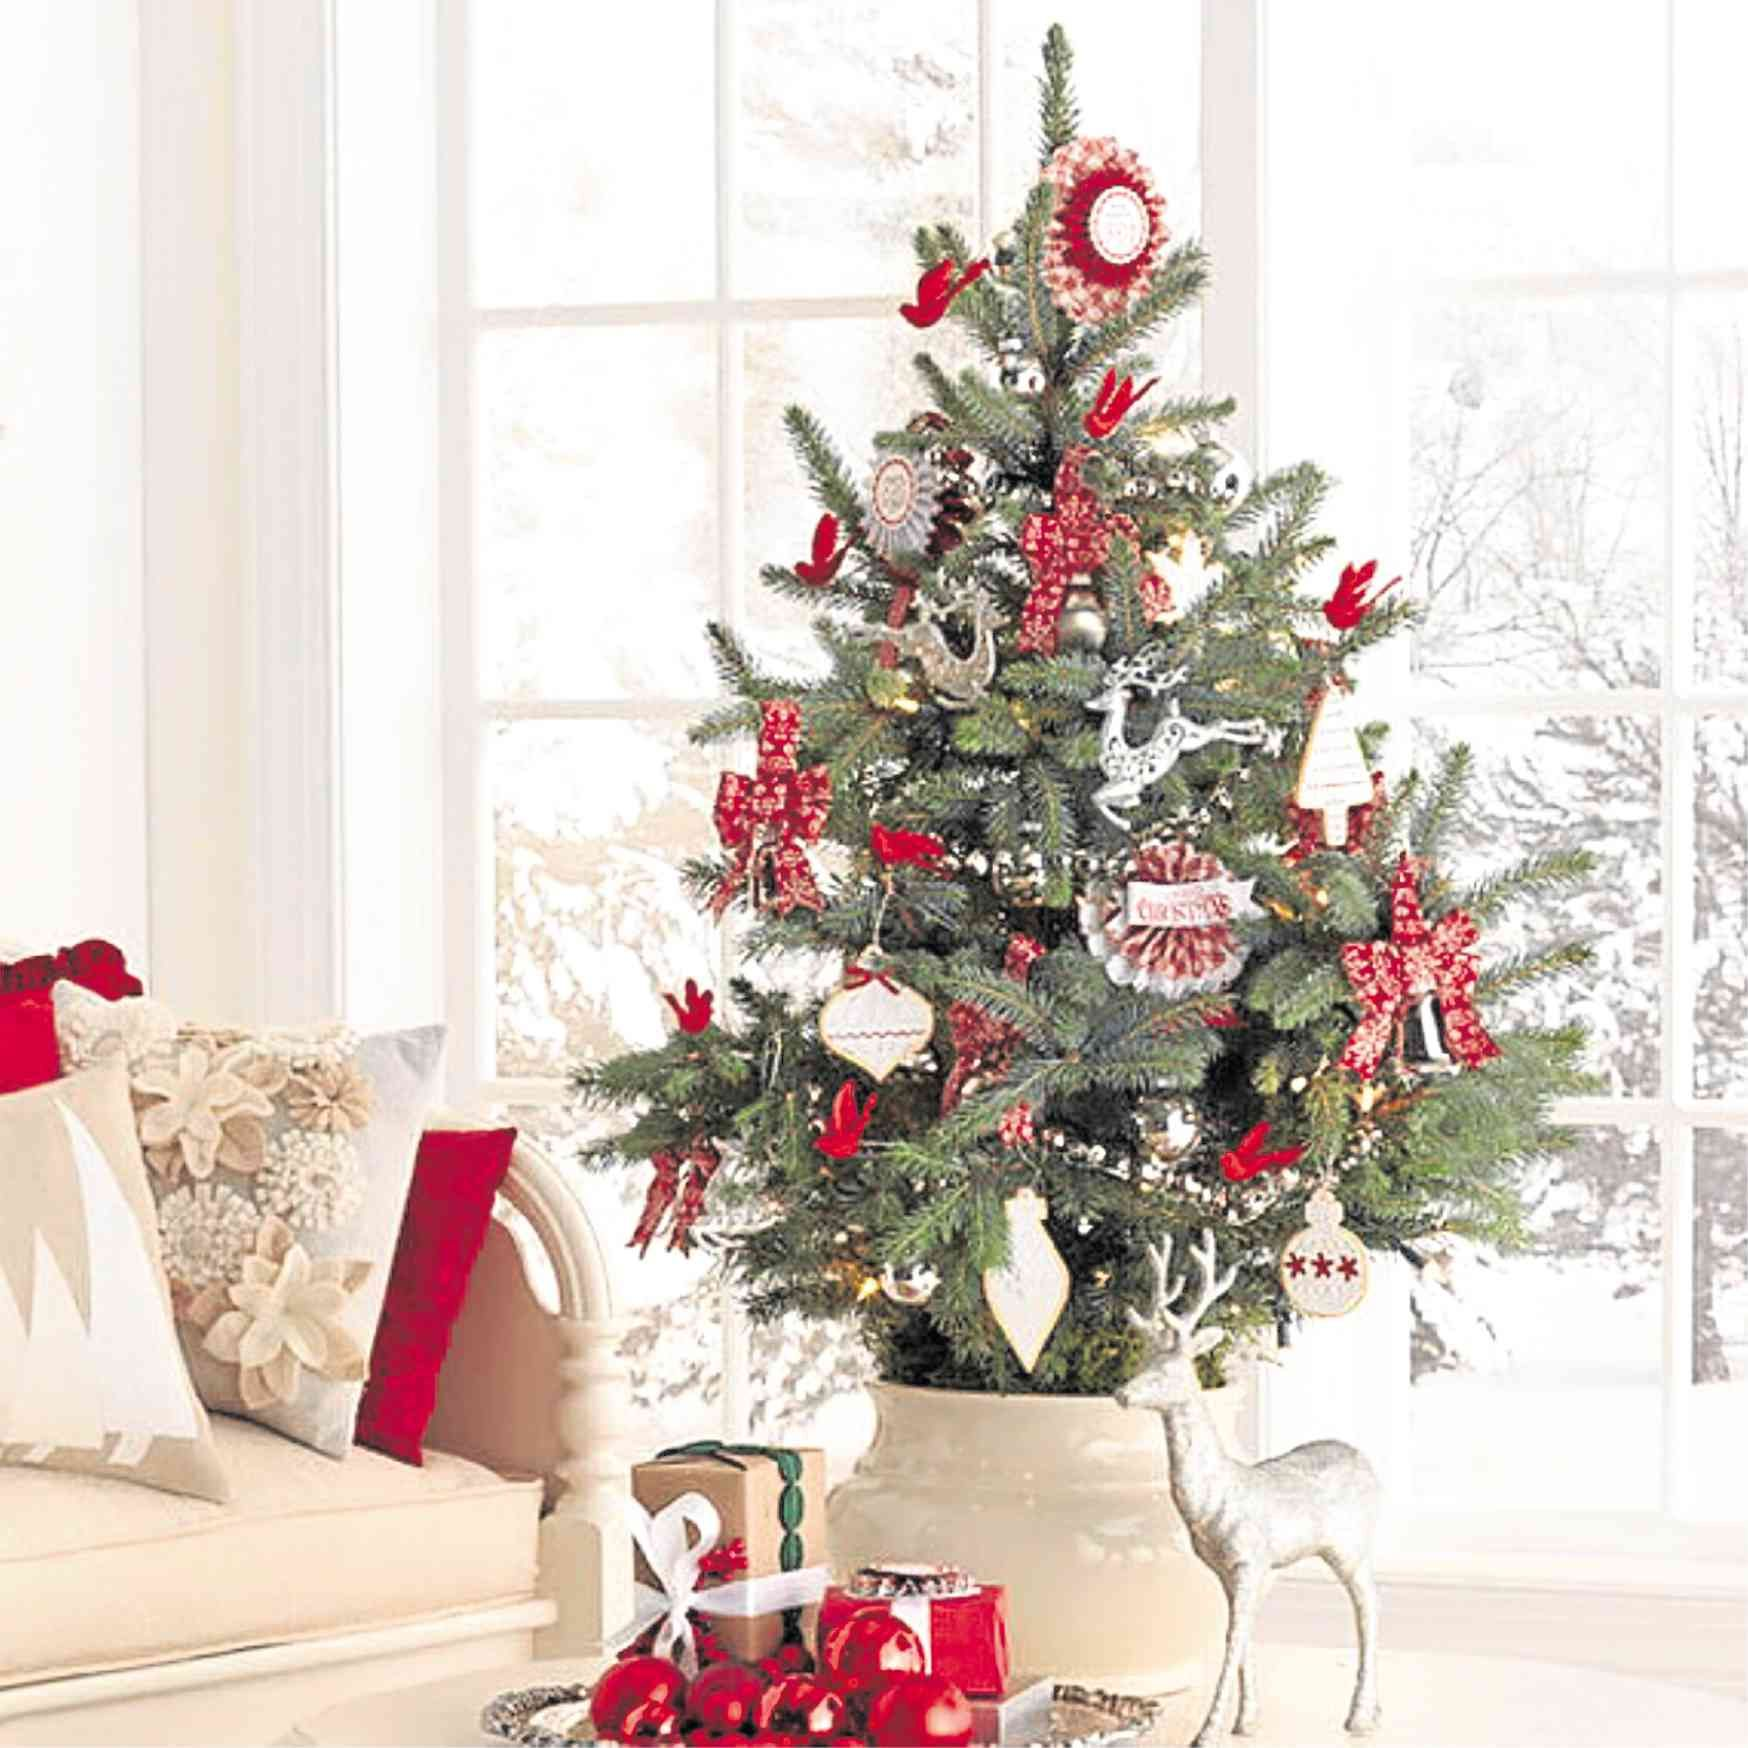 Small Christmas Tree For Kids Room Decorating Ideas Small Space Christmas Tree Christmas Tree Decorating Themes Mini Christmas Tree Decorations